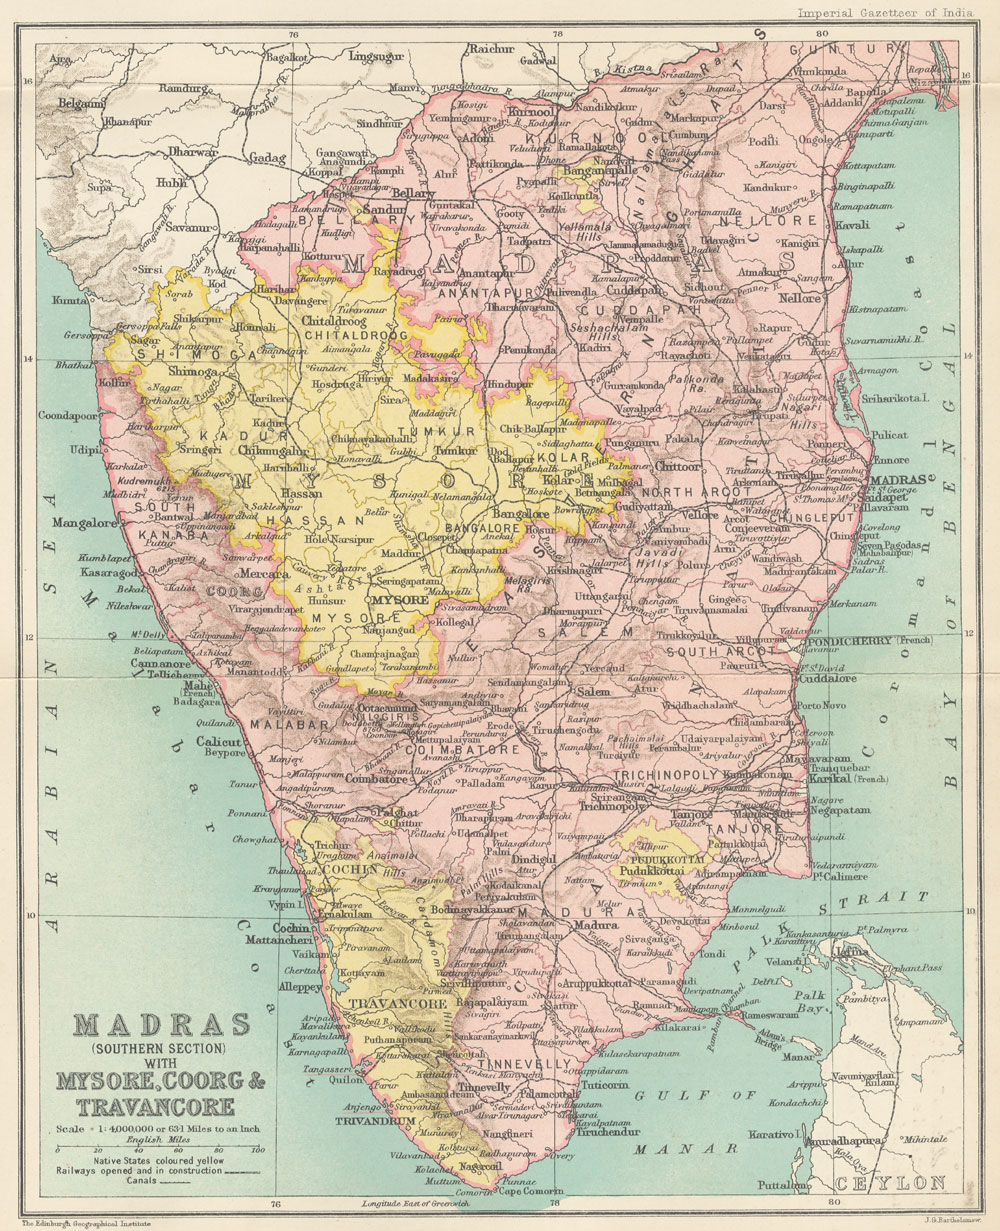 FileMap of Madras Southern section with Mysore Coorg and